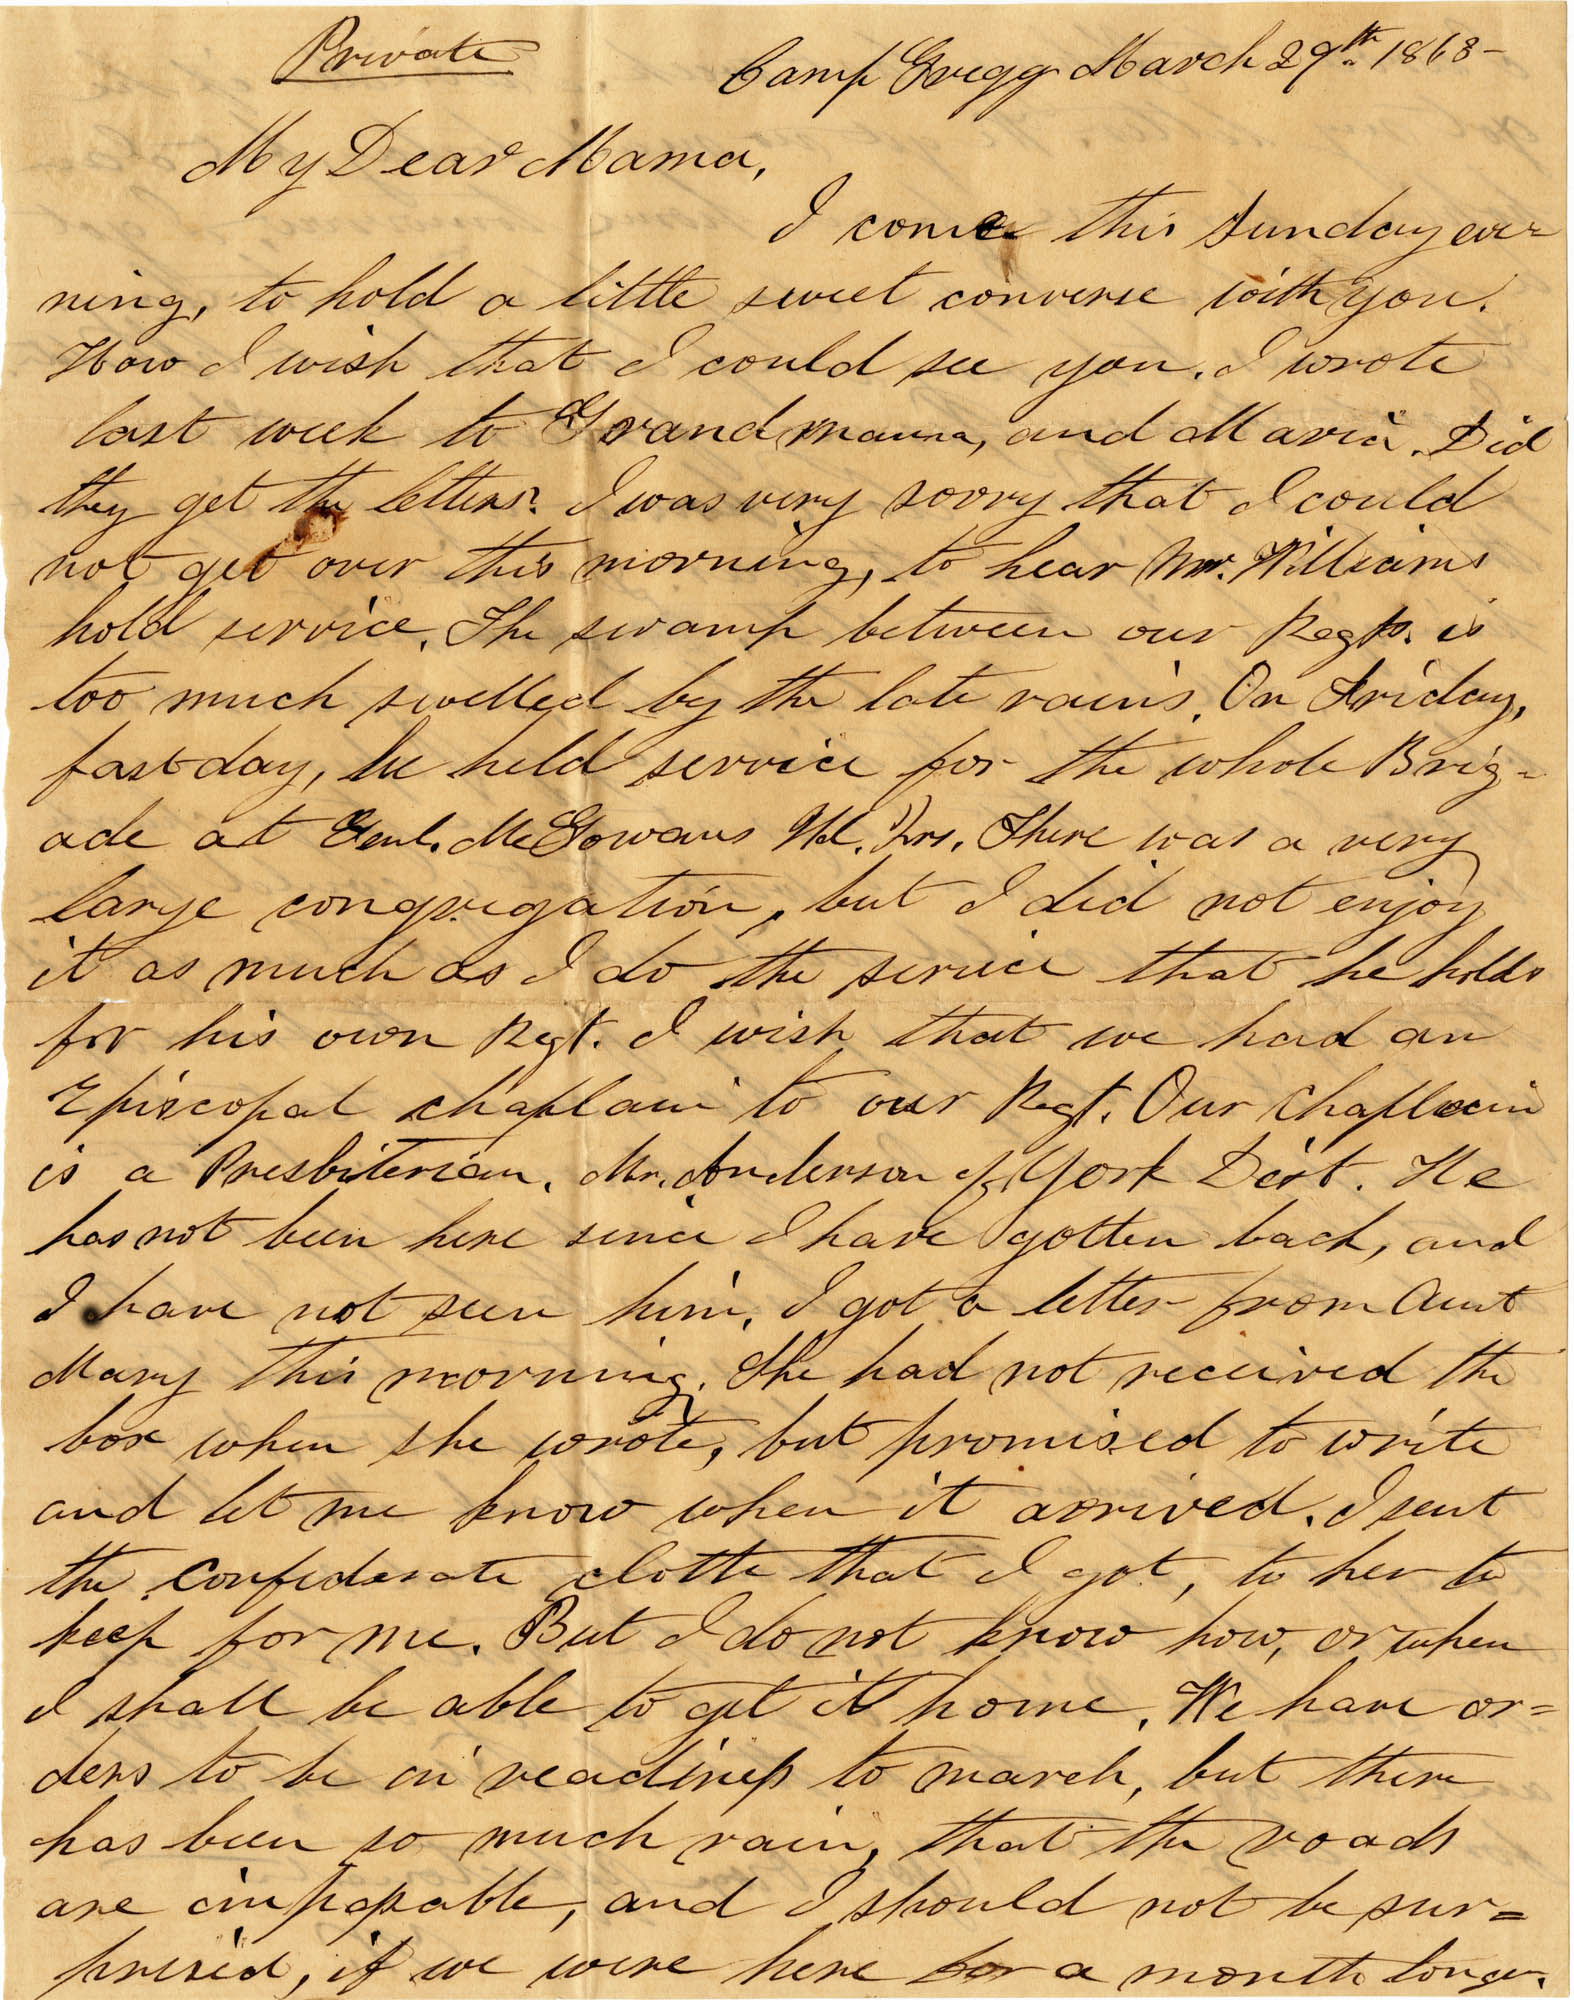 078. Willis Keith to Anna Bell Keith -- Mar. 10, 1863